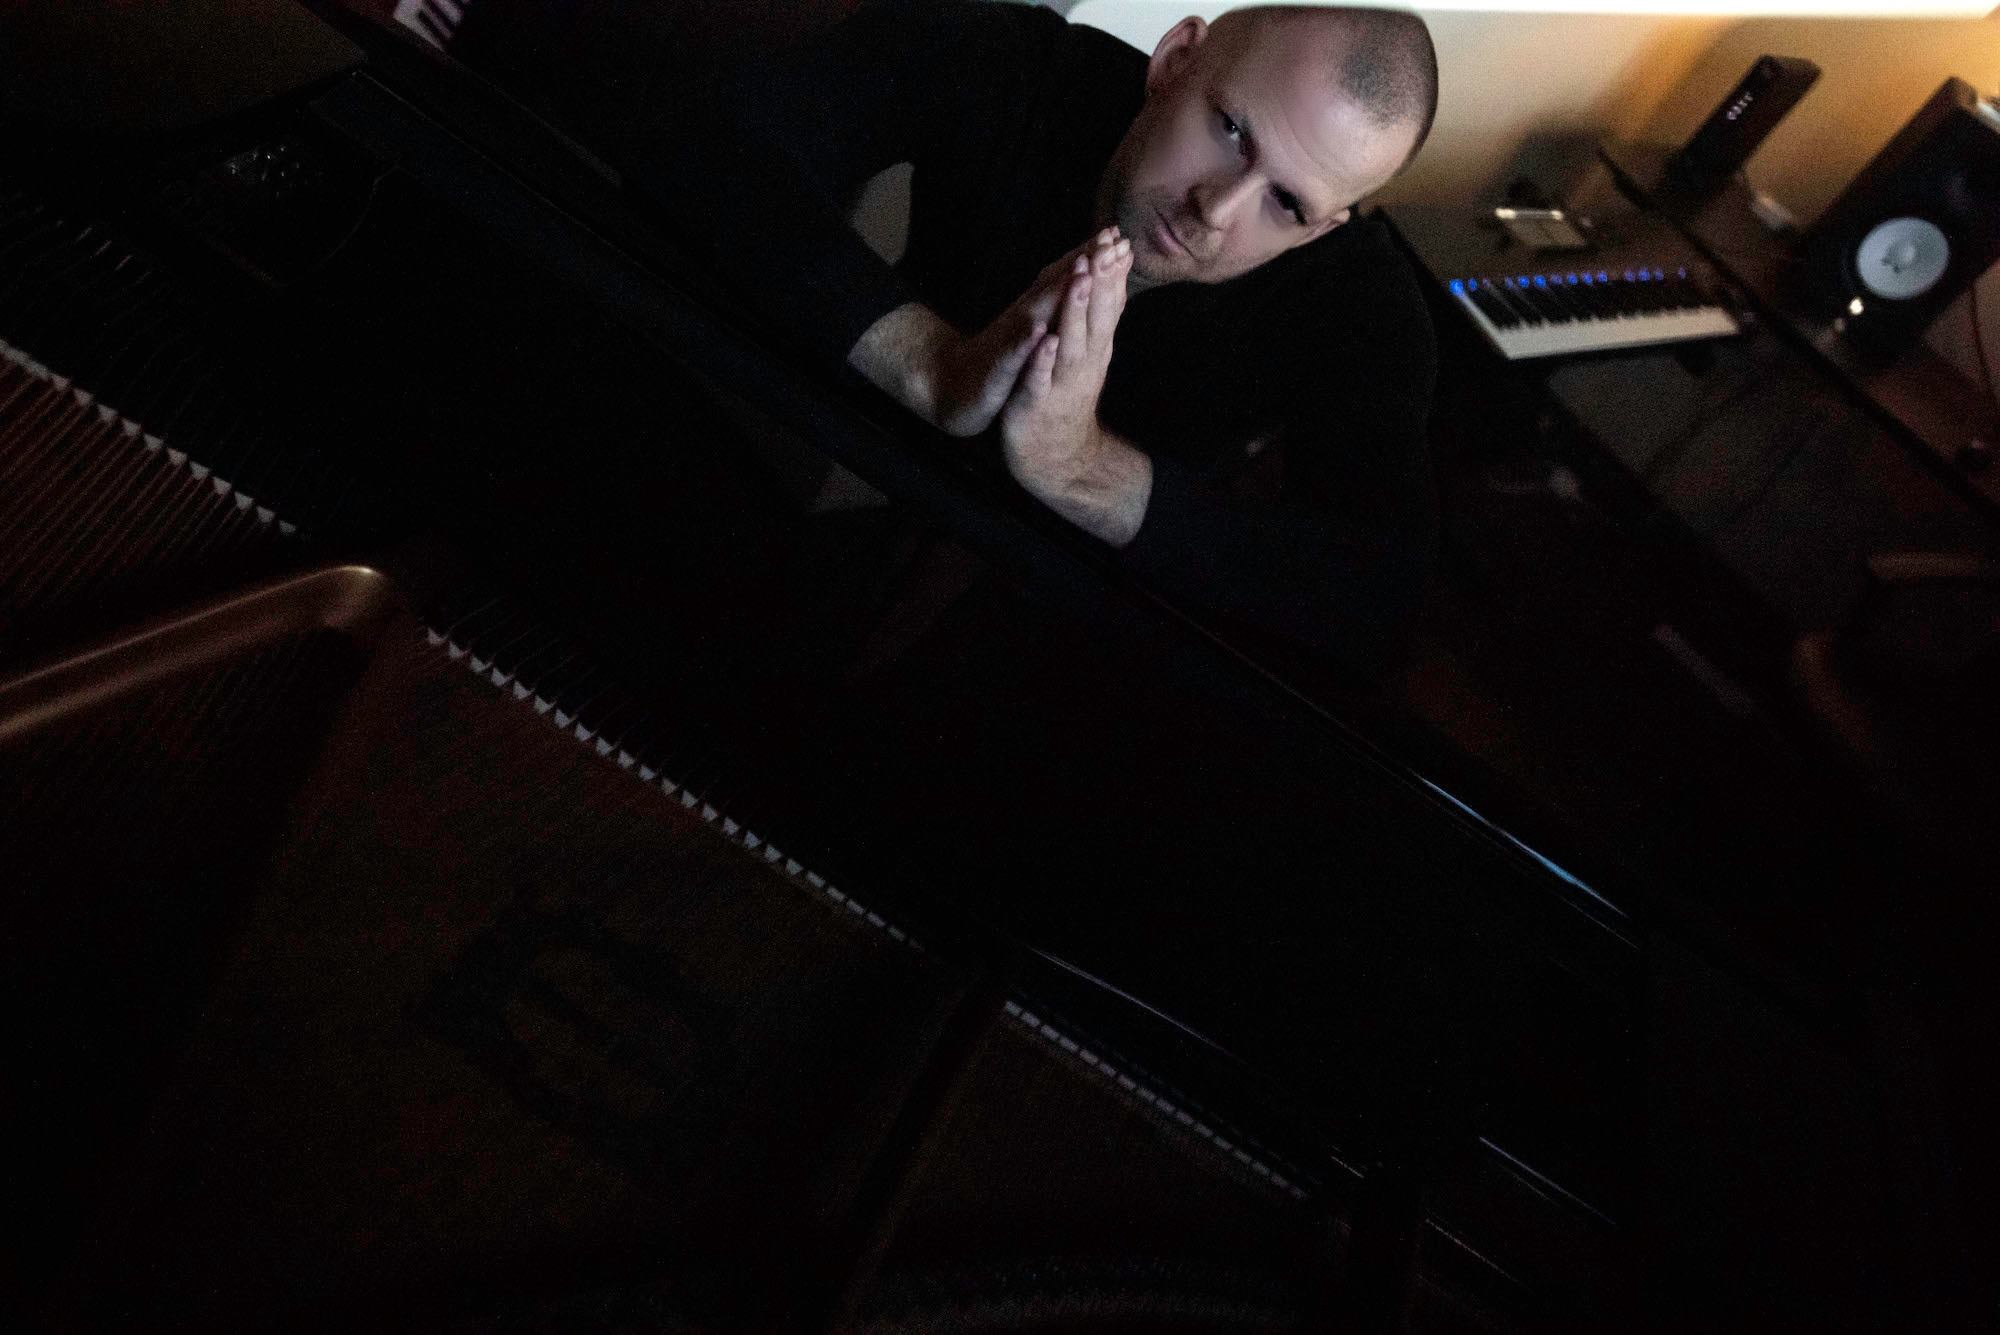 Pianist and songwriter Kit Taylor in his home studio in Orenco Station, Hillsboro, OR